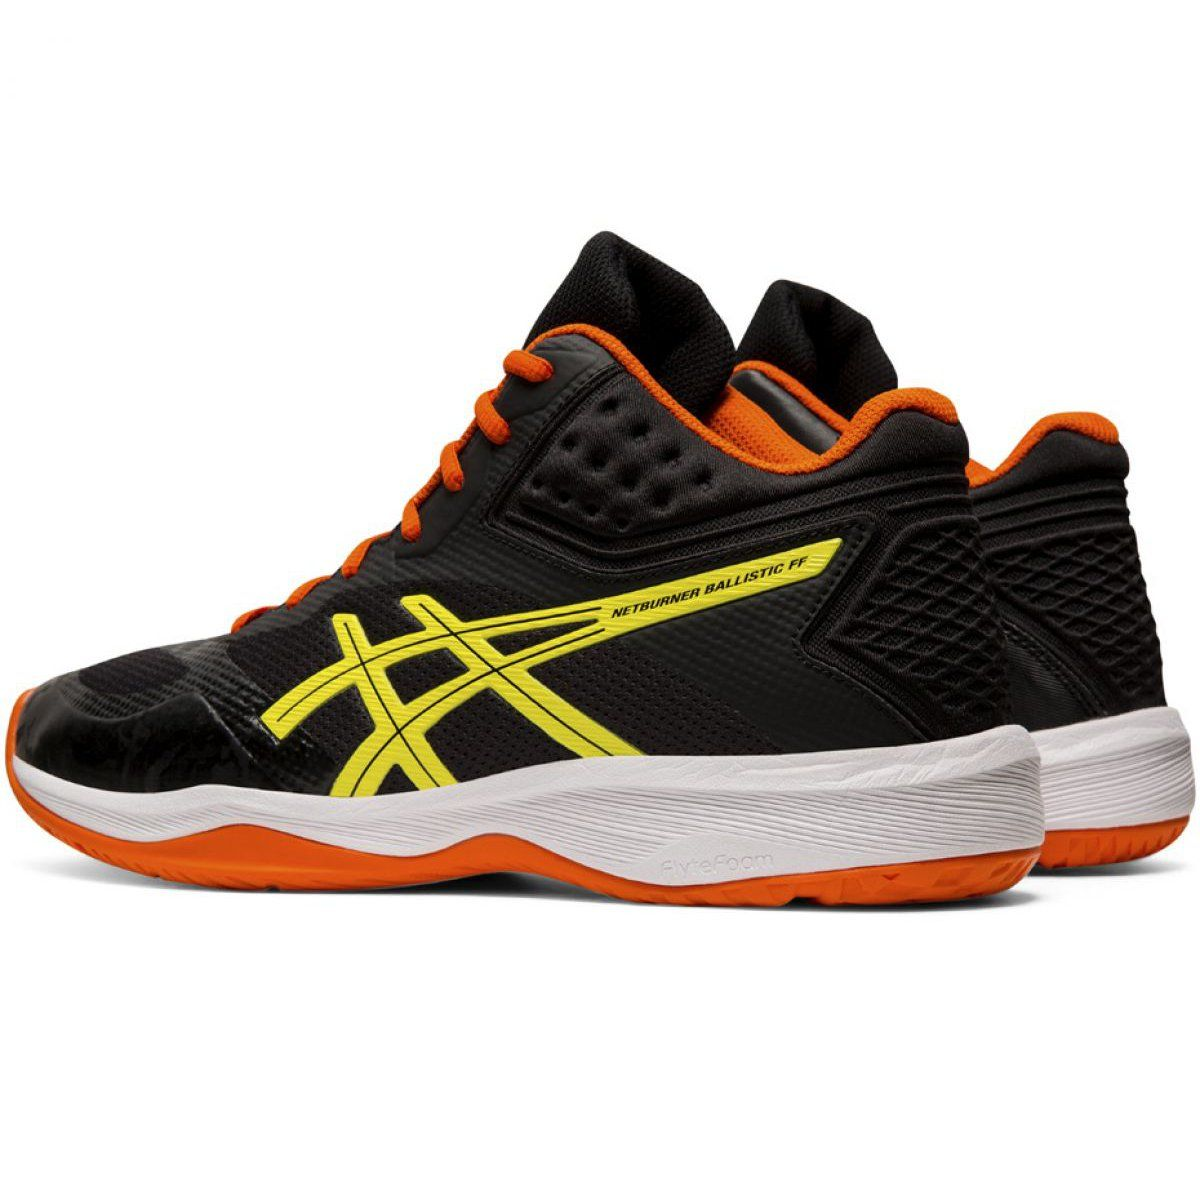 Buty Do Siatkowki Asics Netburner Ballistic Ff Mt M 1051a003 003 Czarne Czarne Volleyball Shoes Asics Volleyball Shoes Asics